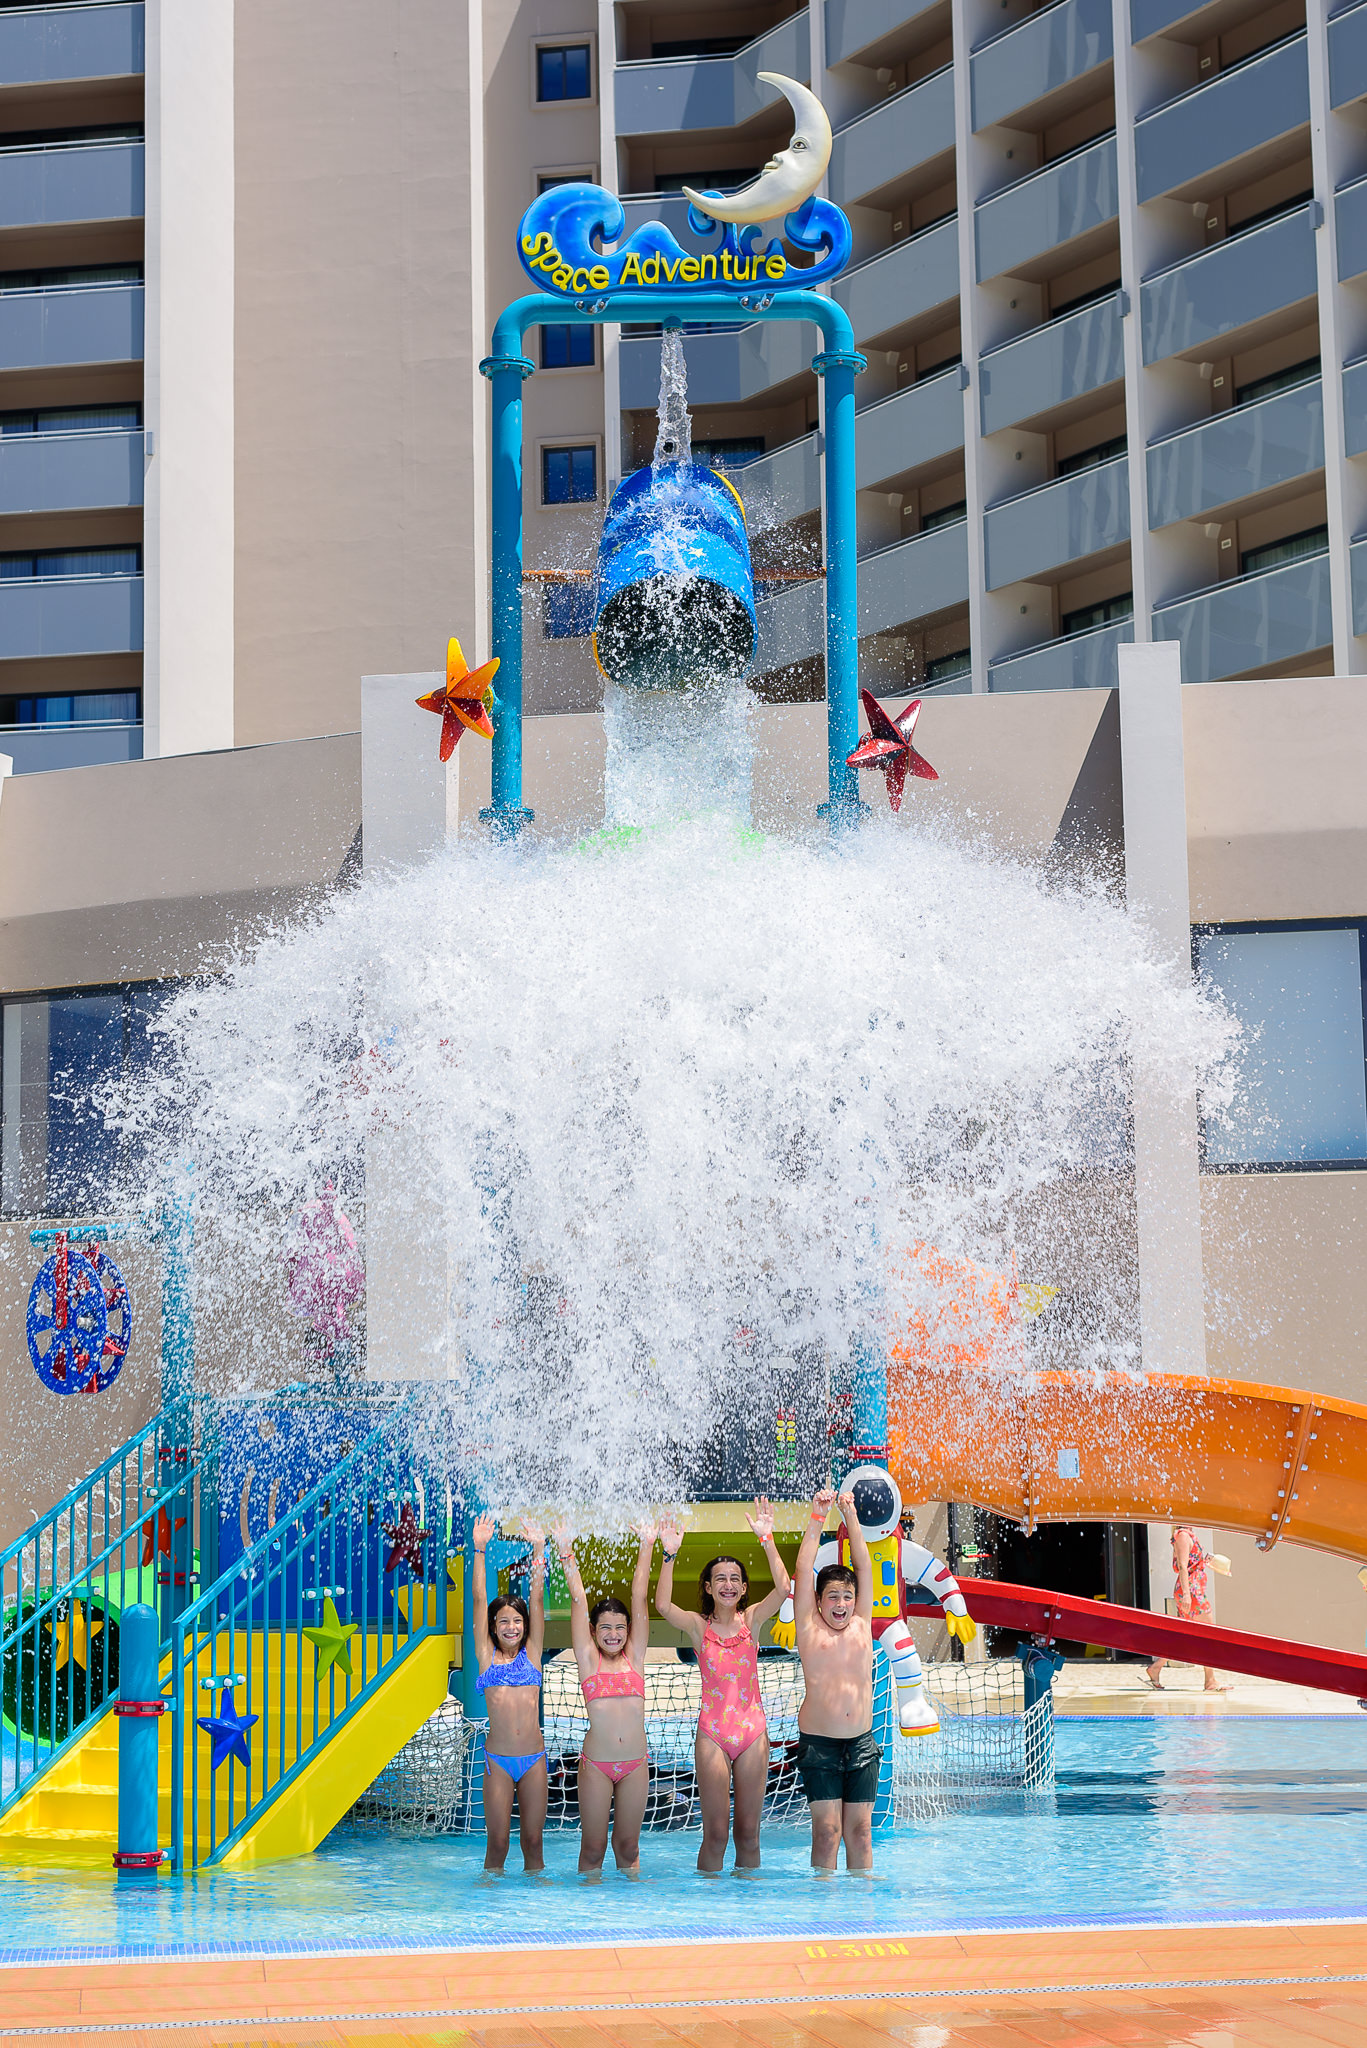 407/Photos/Services/SplashPark_29.jpg